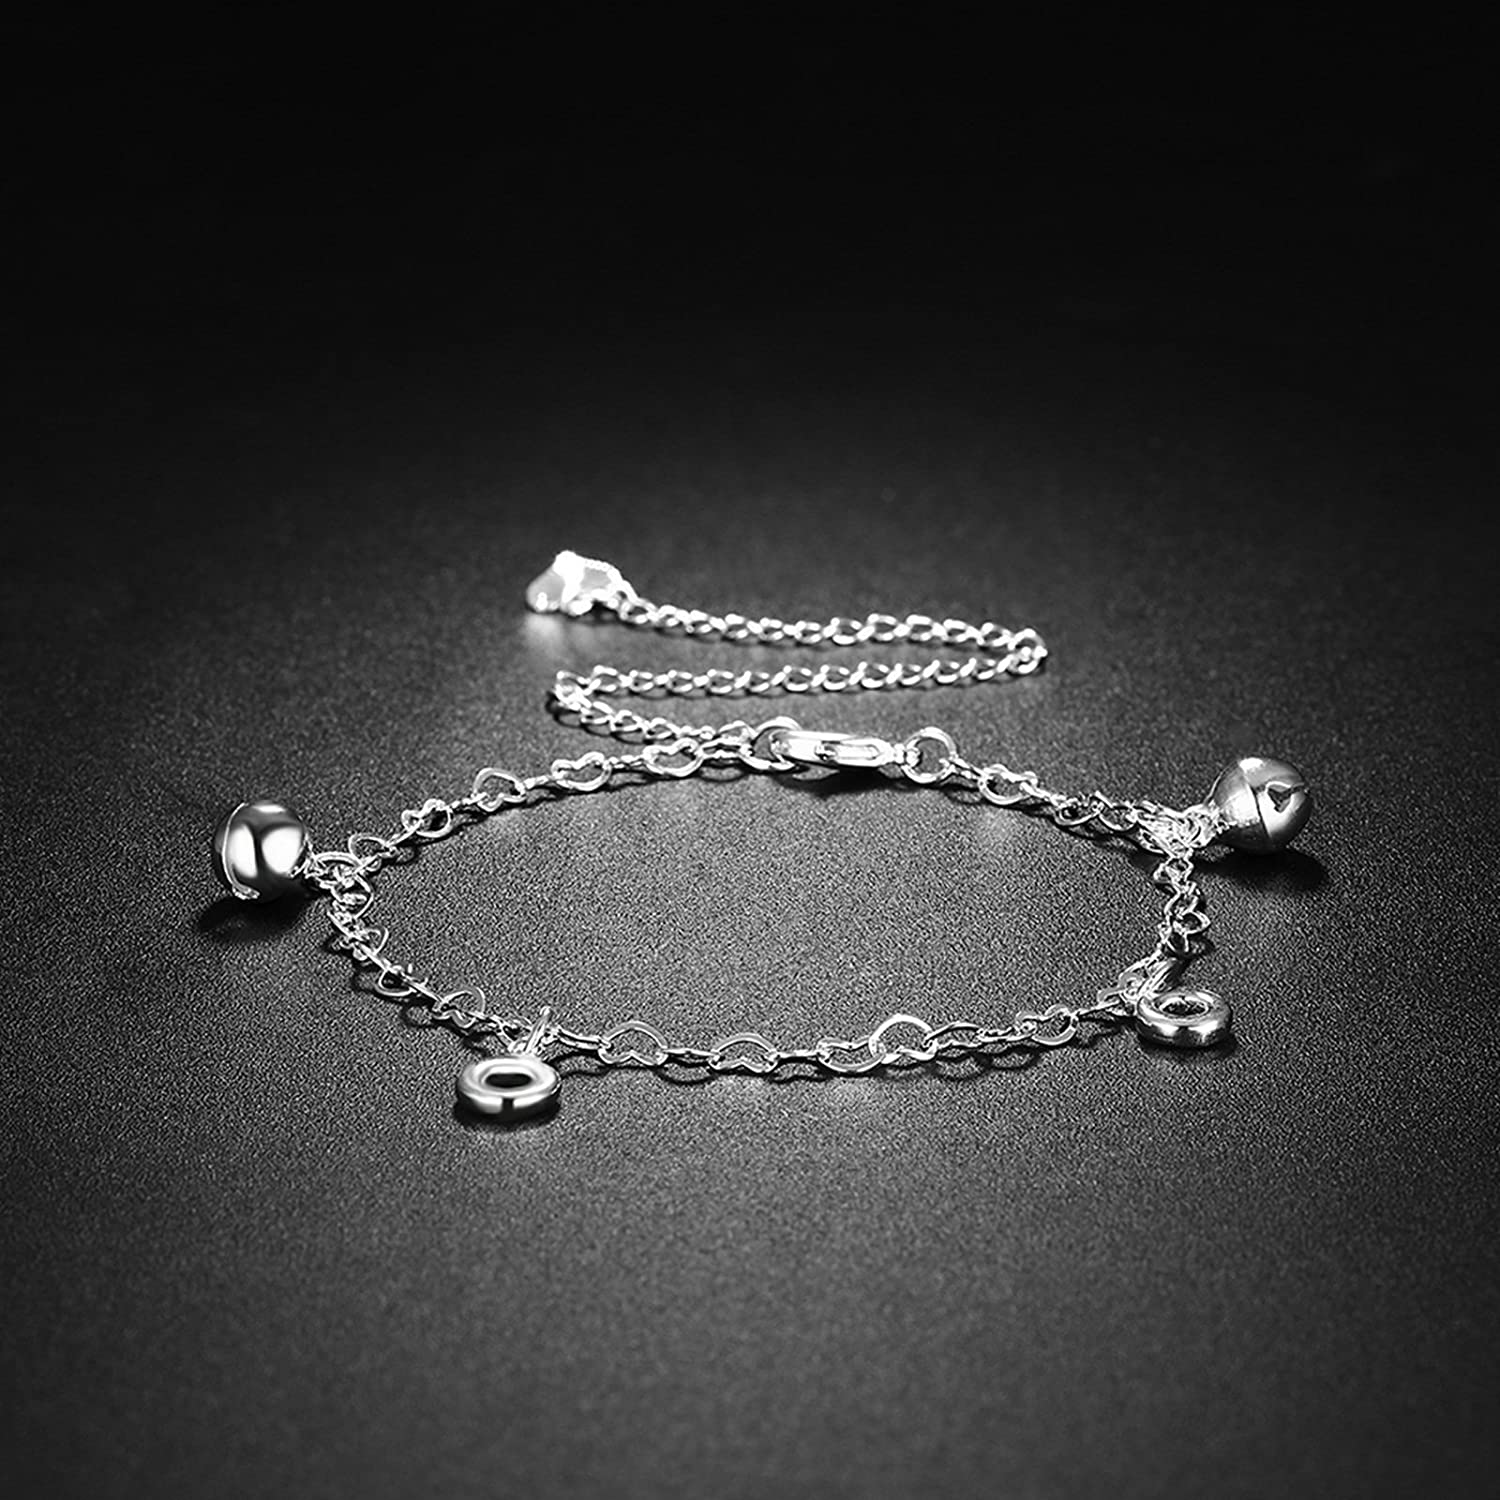 Bishilin Anklet Chain Jewelry Heart Bells Round anklet infinity 20 CM